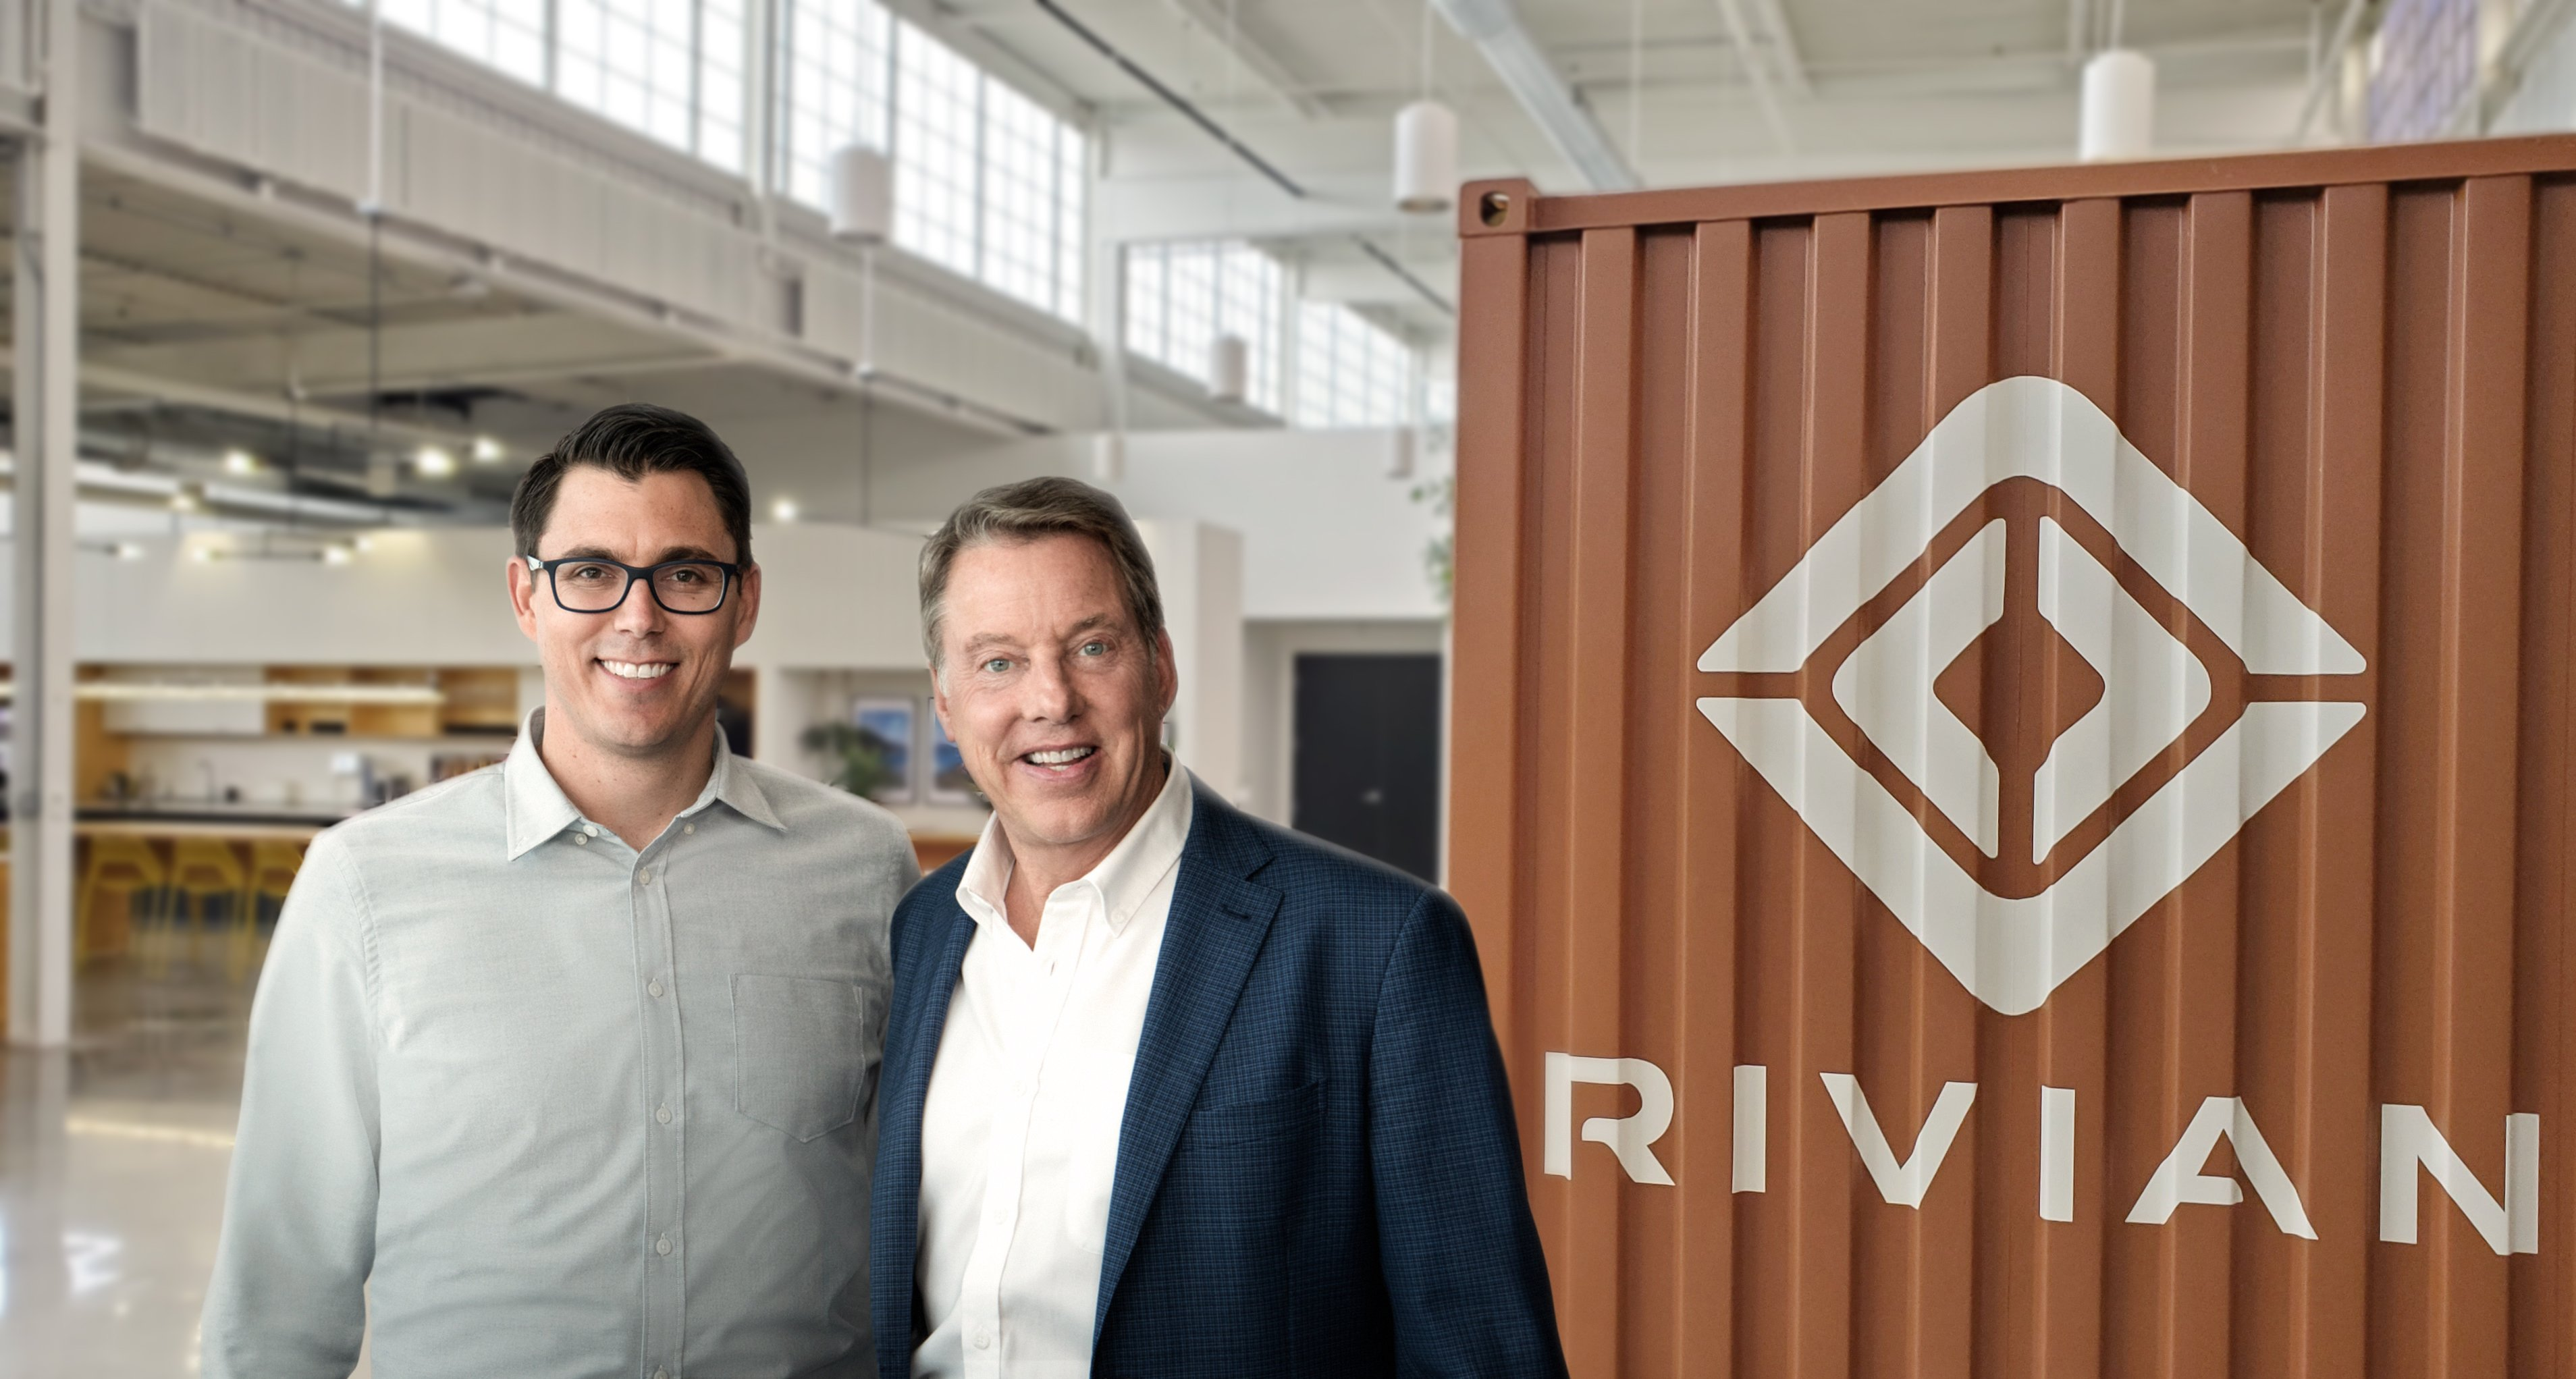 Ford Invests $500 Million in Rivian, Plans to Use Platform